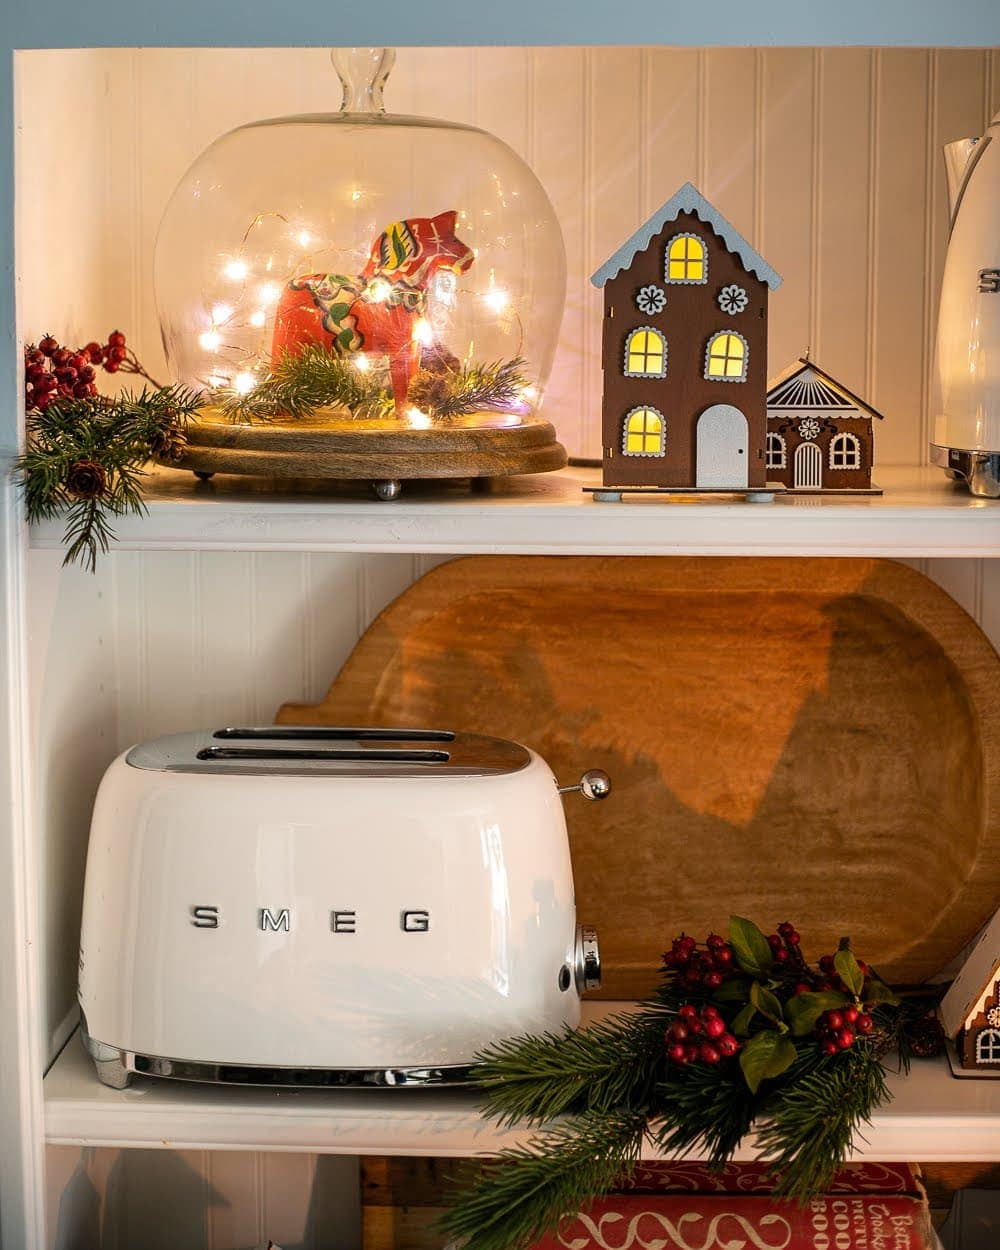 Swedish Christmas kitchen shelves styled with Dala horse and gingerbread